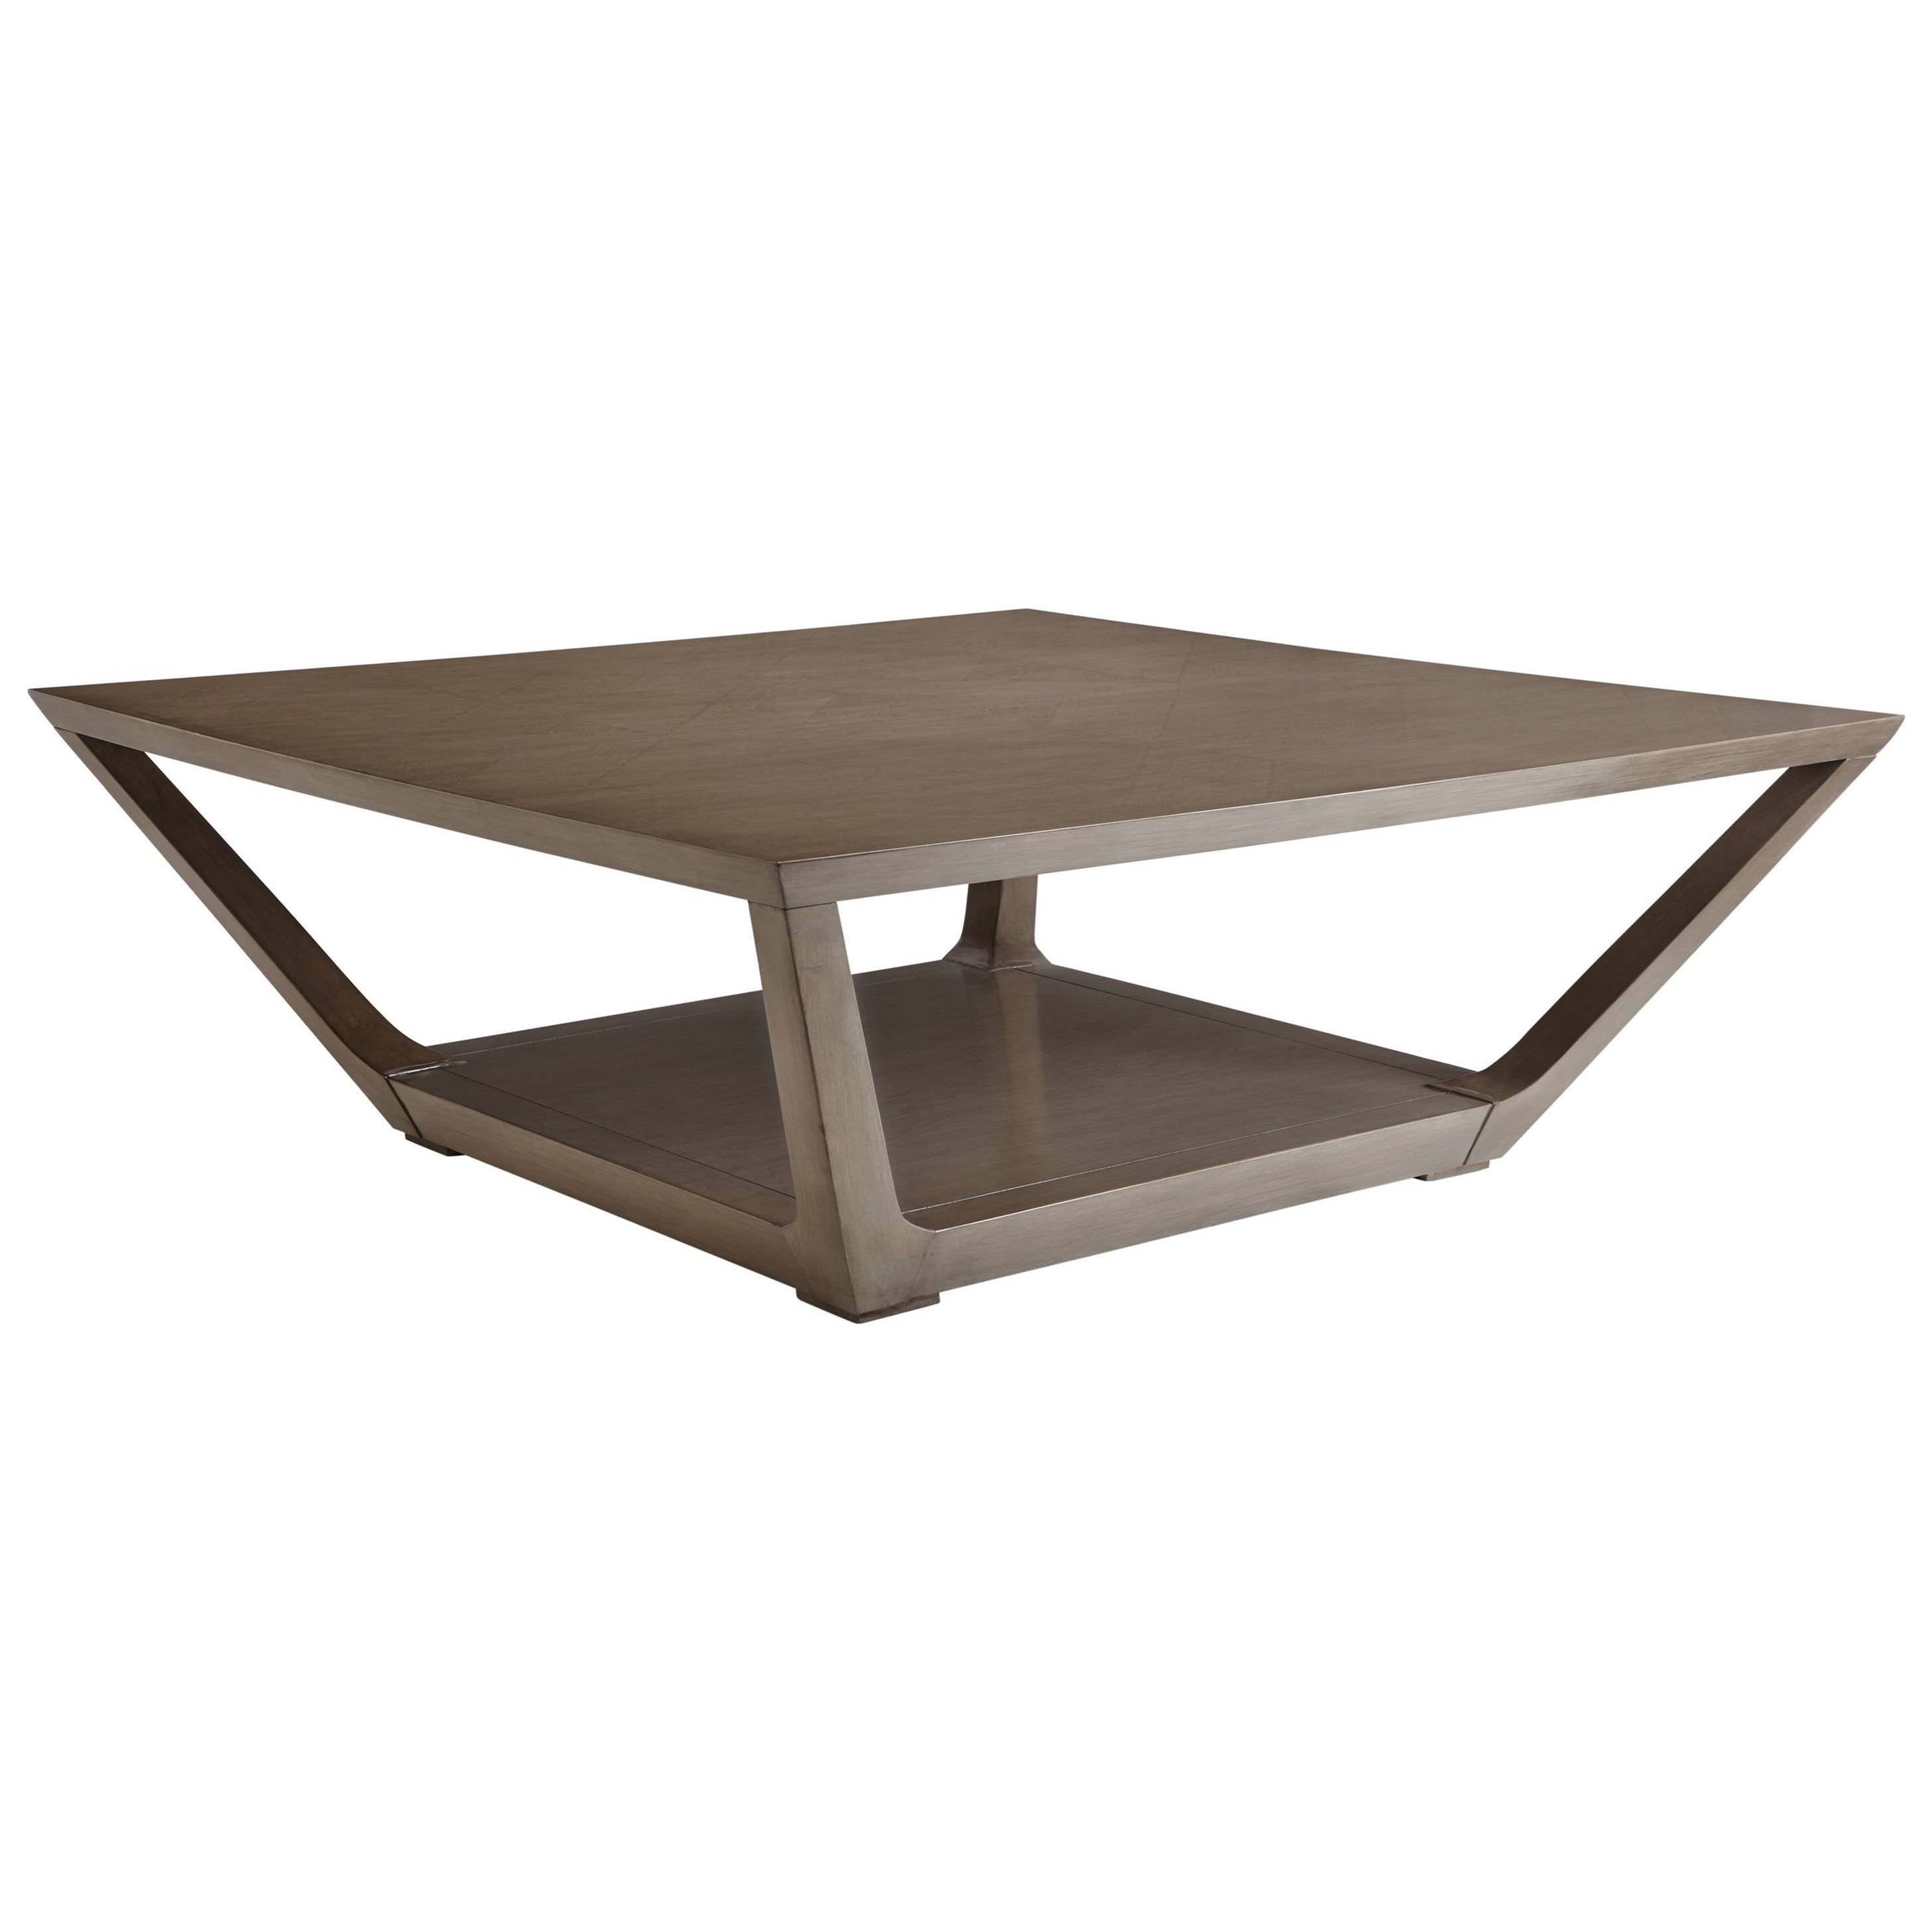 Stanley Furniture Coastal Living Oasis Poseidon Cocktail Table With Square Top Miskelly